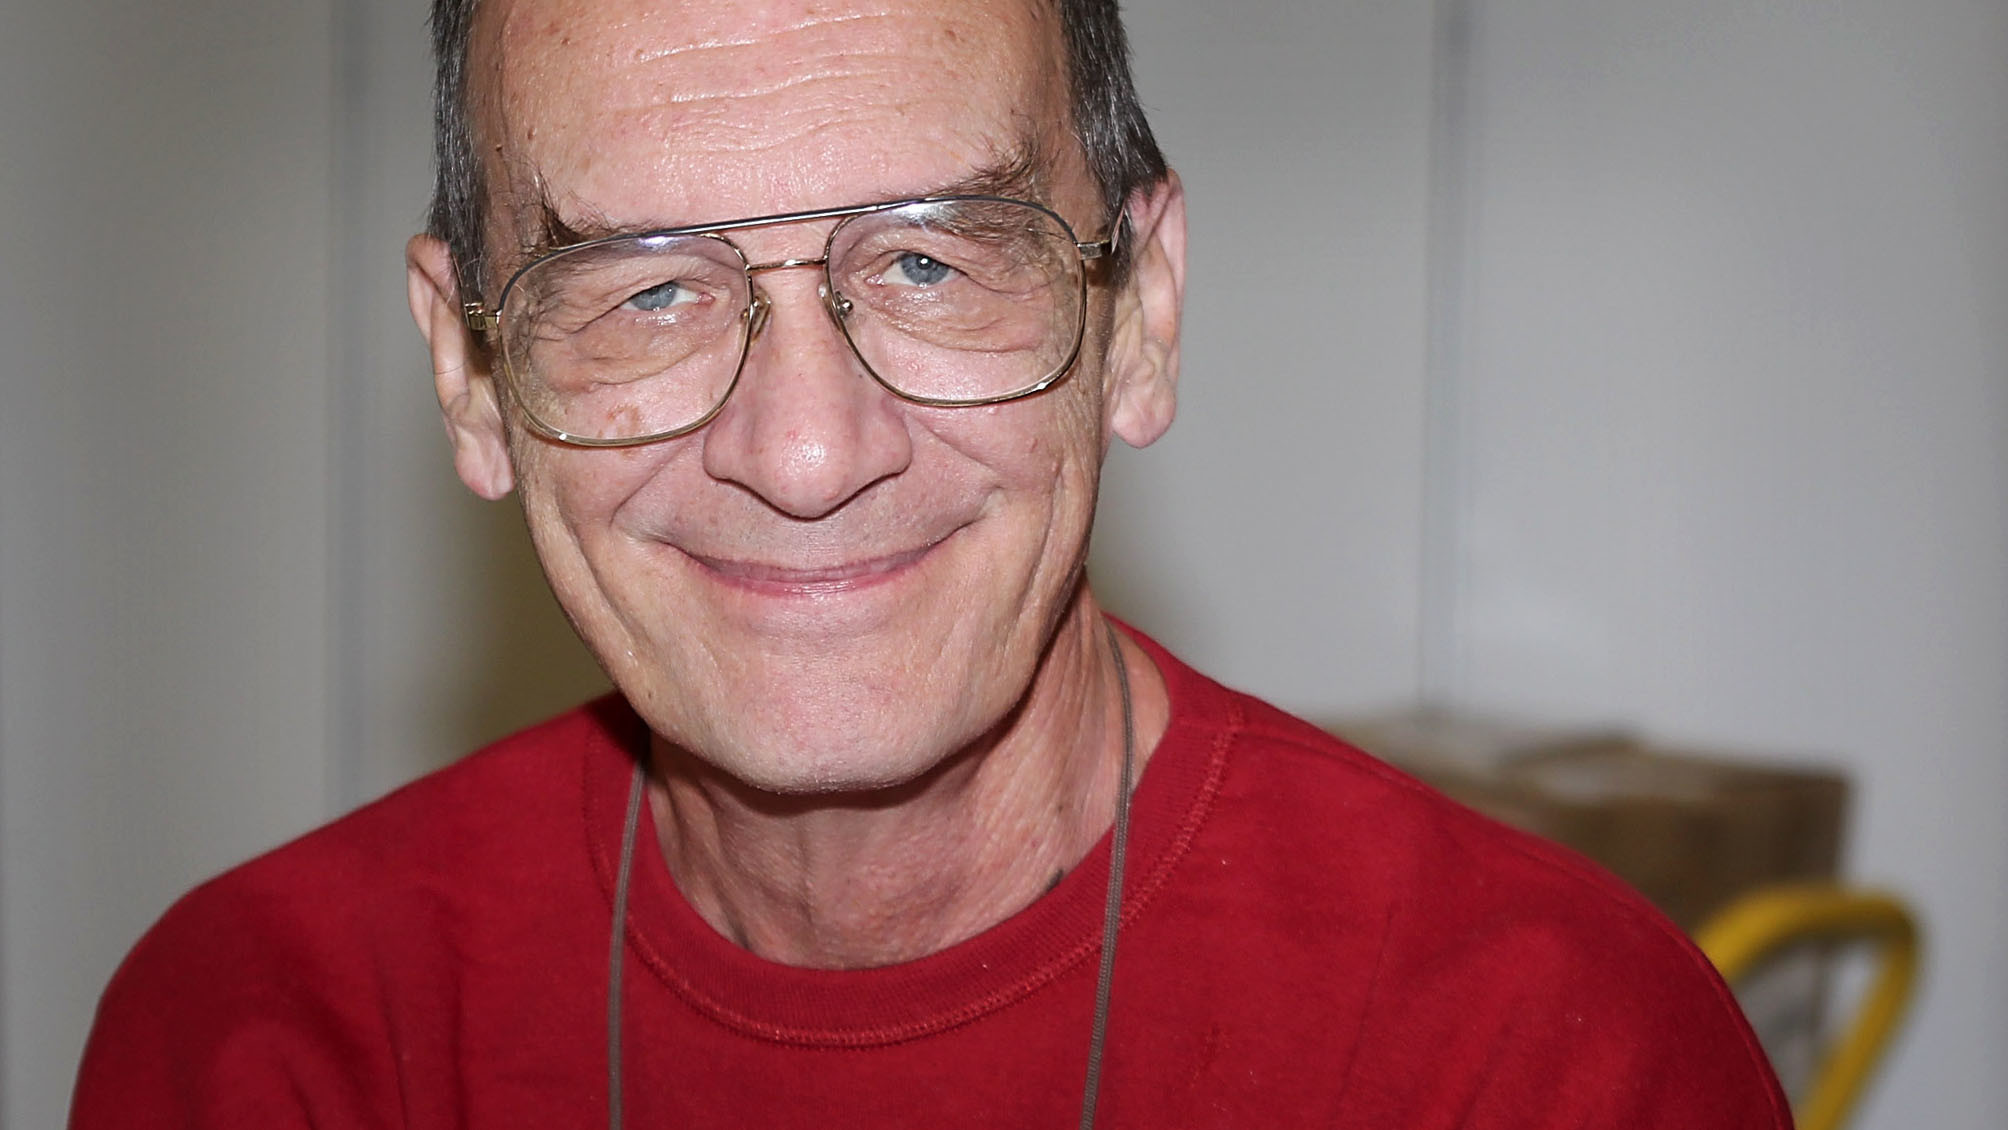 Comic book artist Bernie Wrightson at the Wizard World Austin Comic Con at the Austin Convention Center on October 26, 2012 in Austin, Texas.